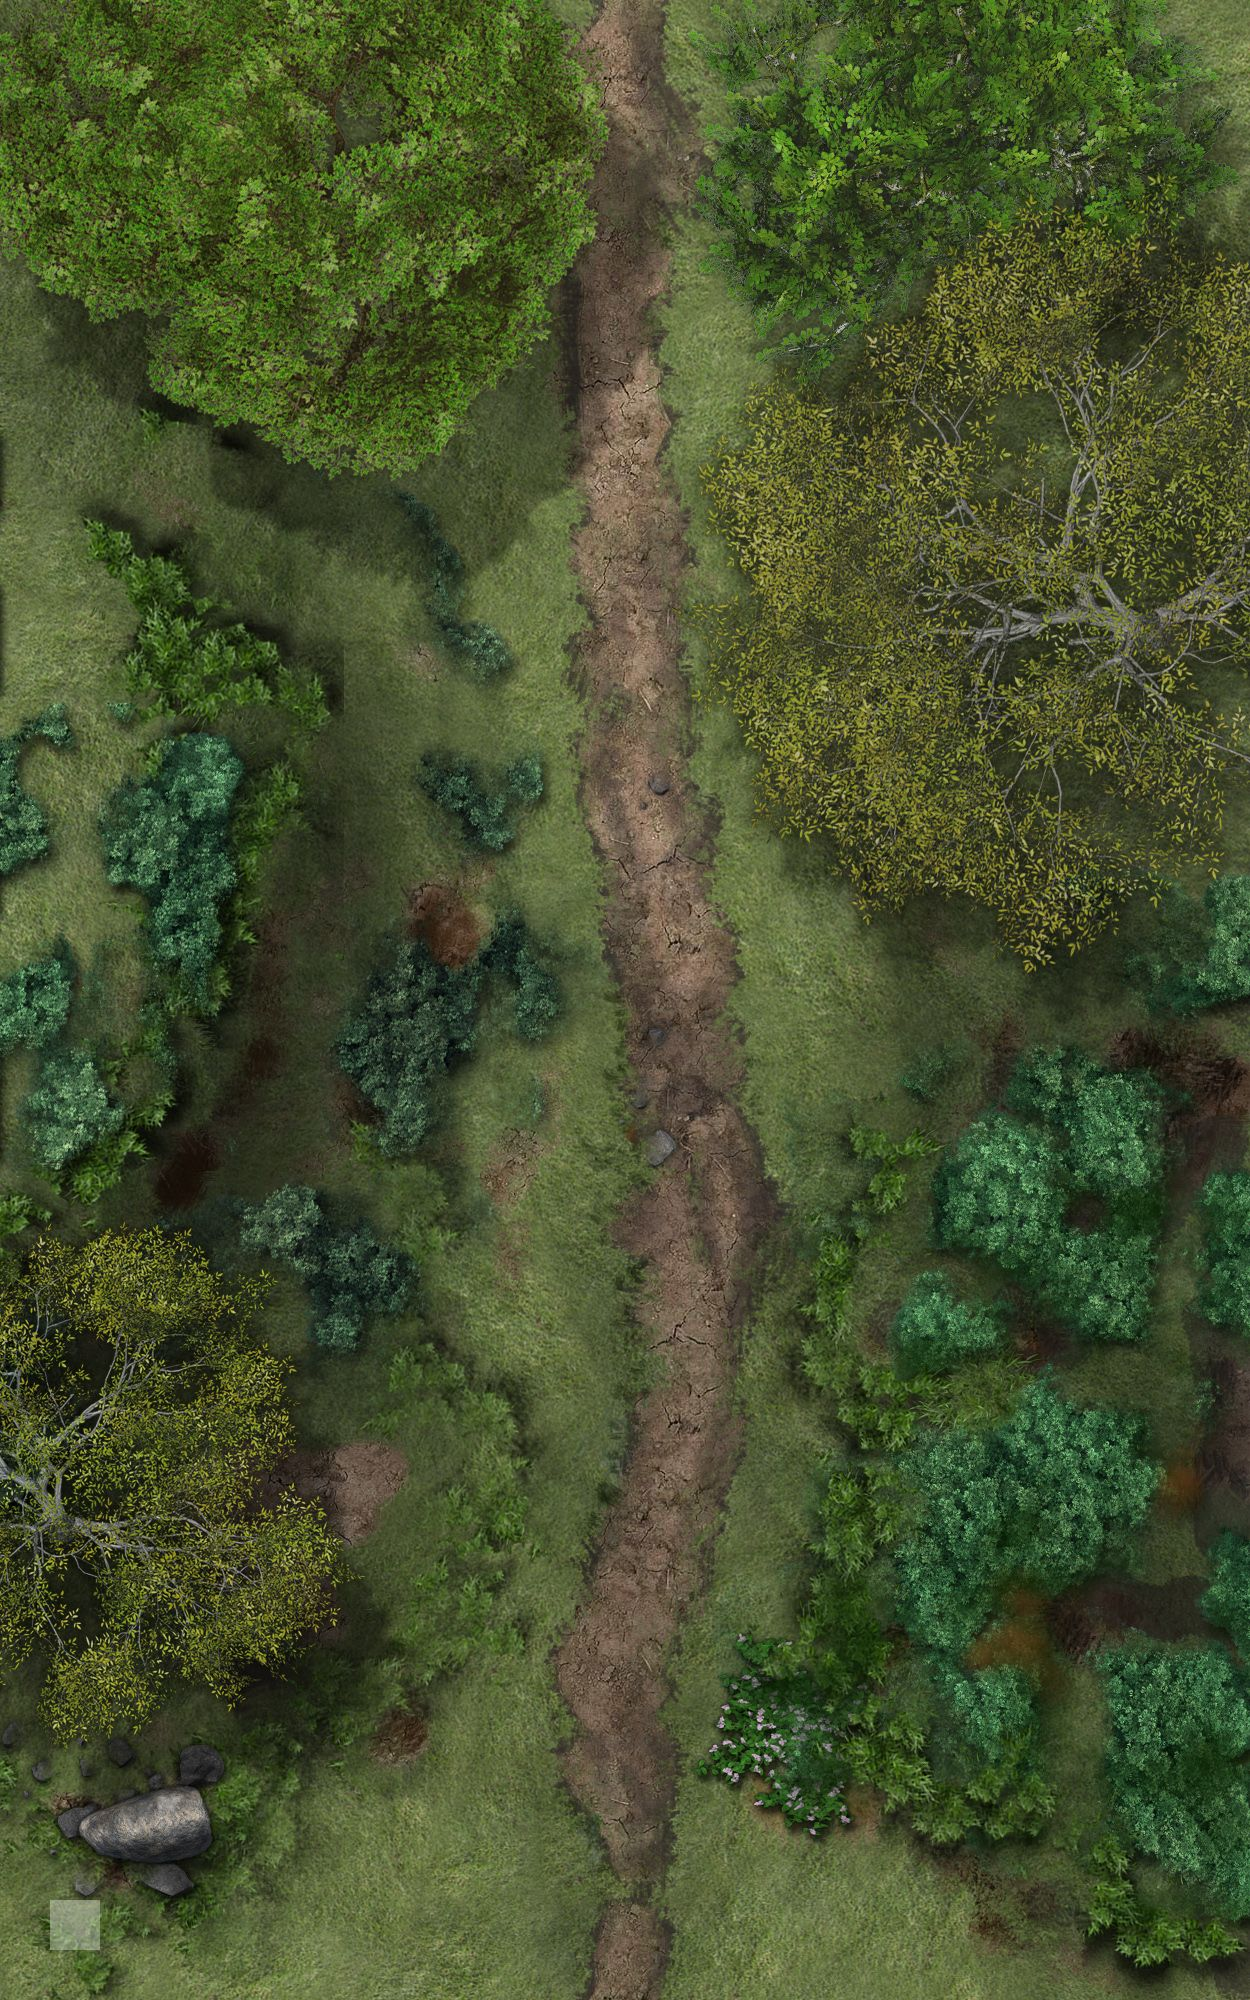 Forest Dnd Map : forest, Www.cartographersguild.com, Attachment.php?attachmentid=68019&d=1412127207, Fantasy, World, Forest